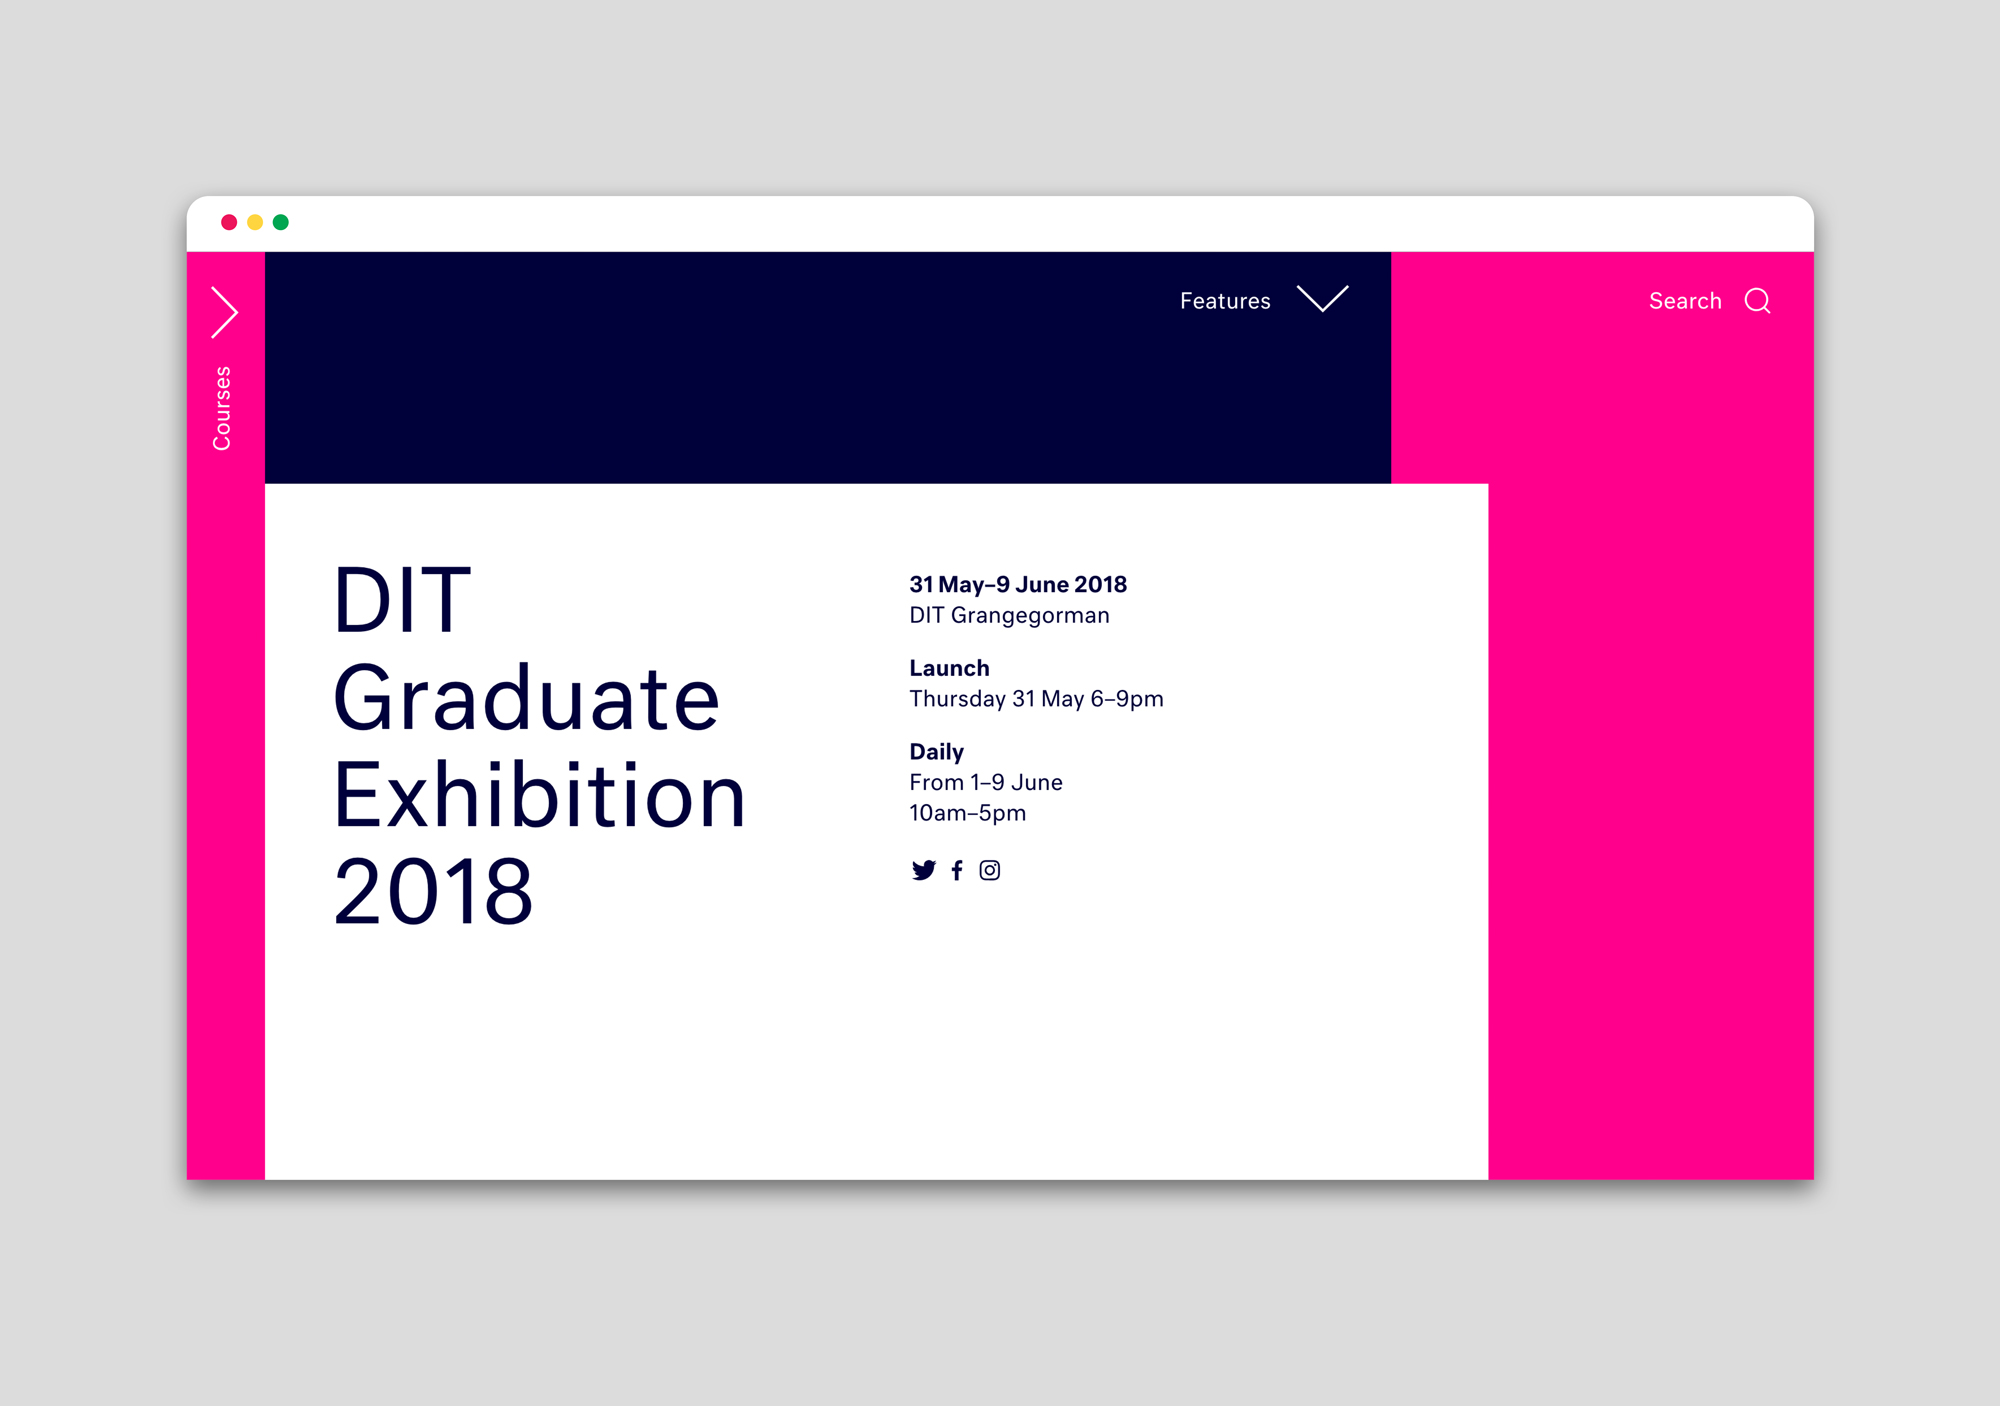 Cover image: DIT Graduate Exhibition 2018